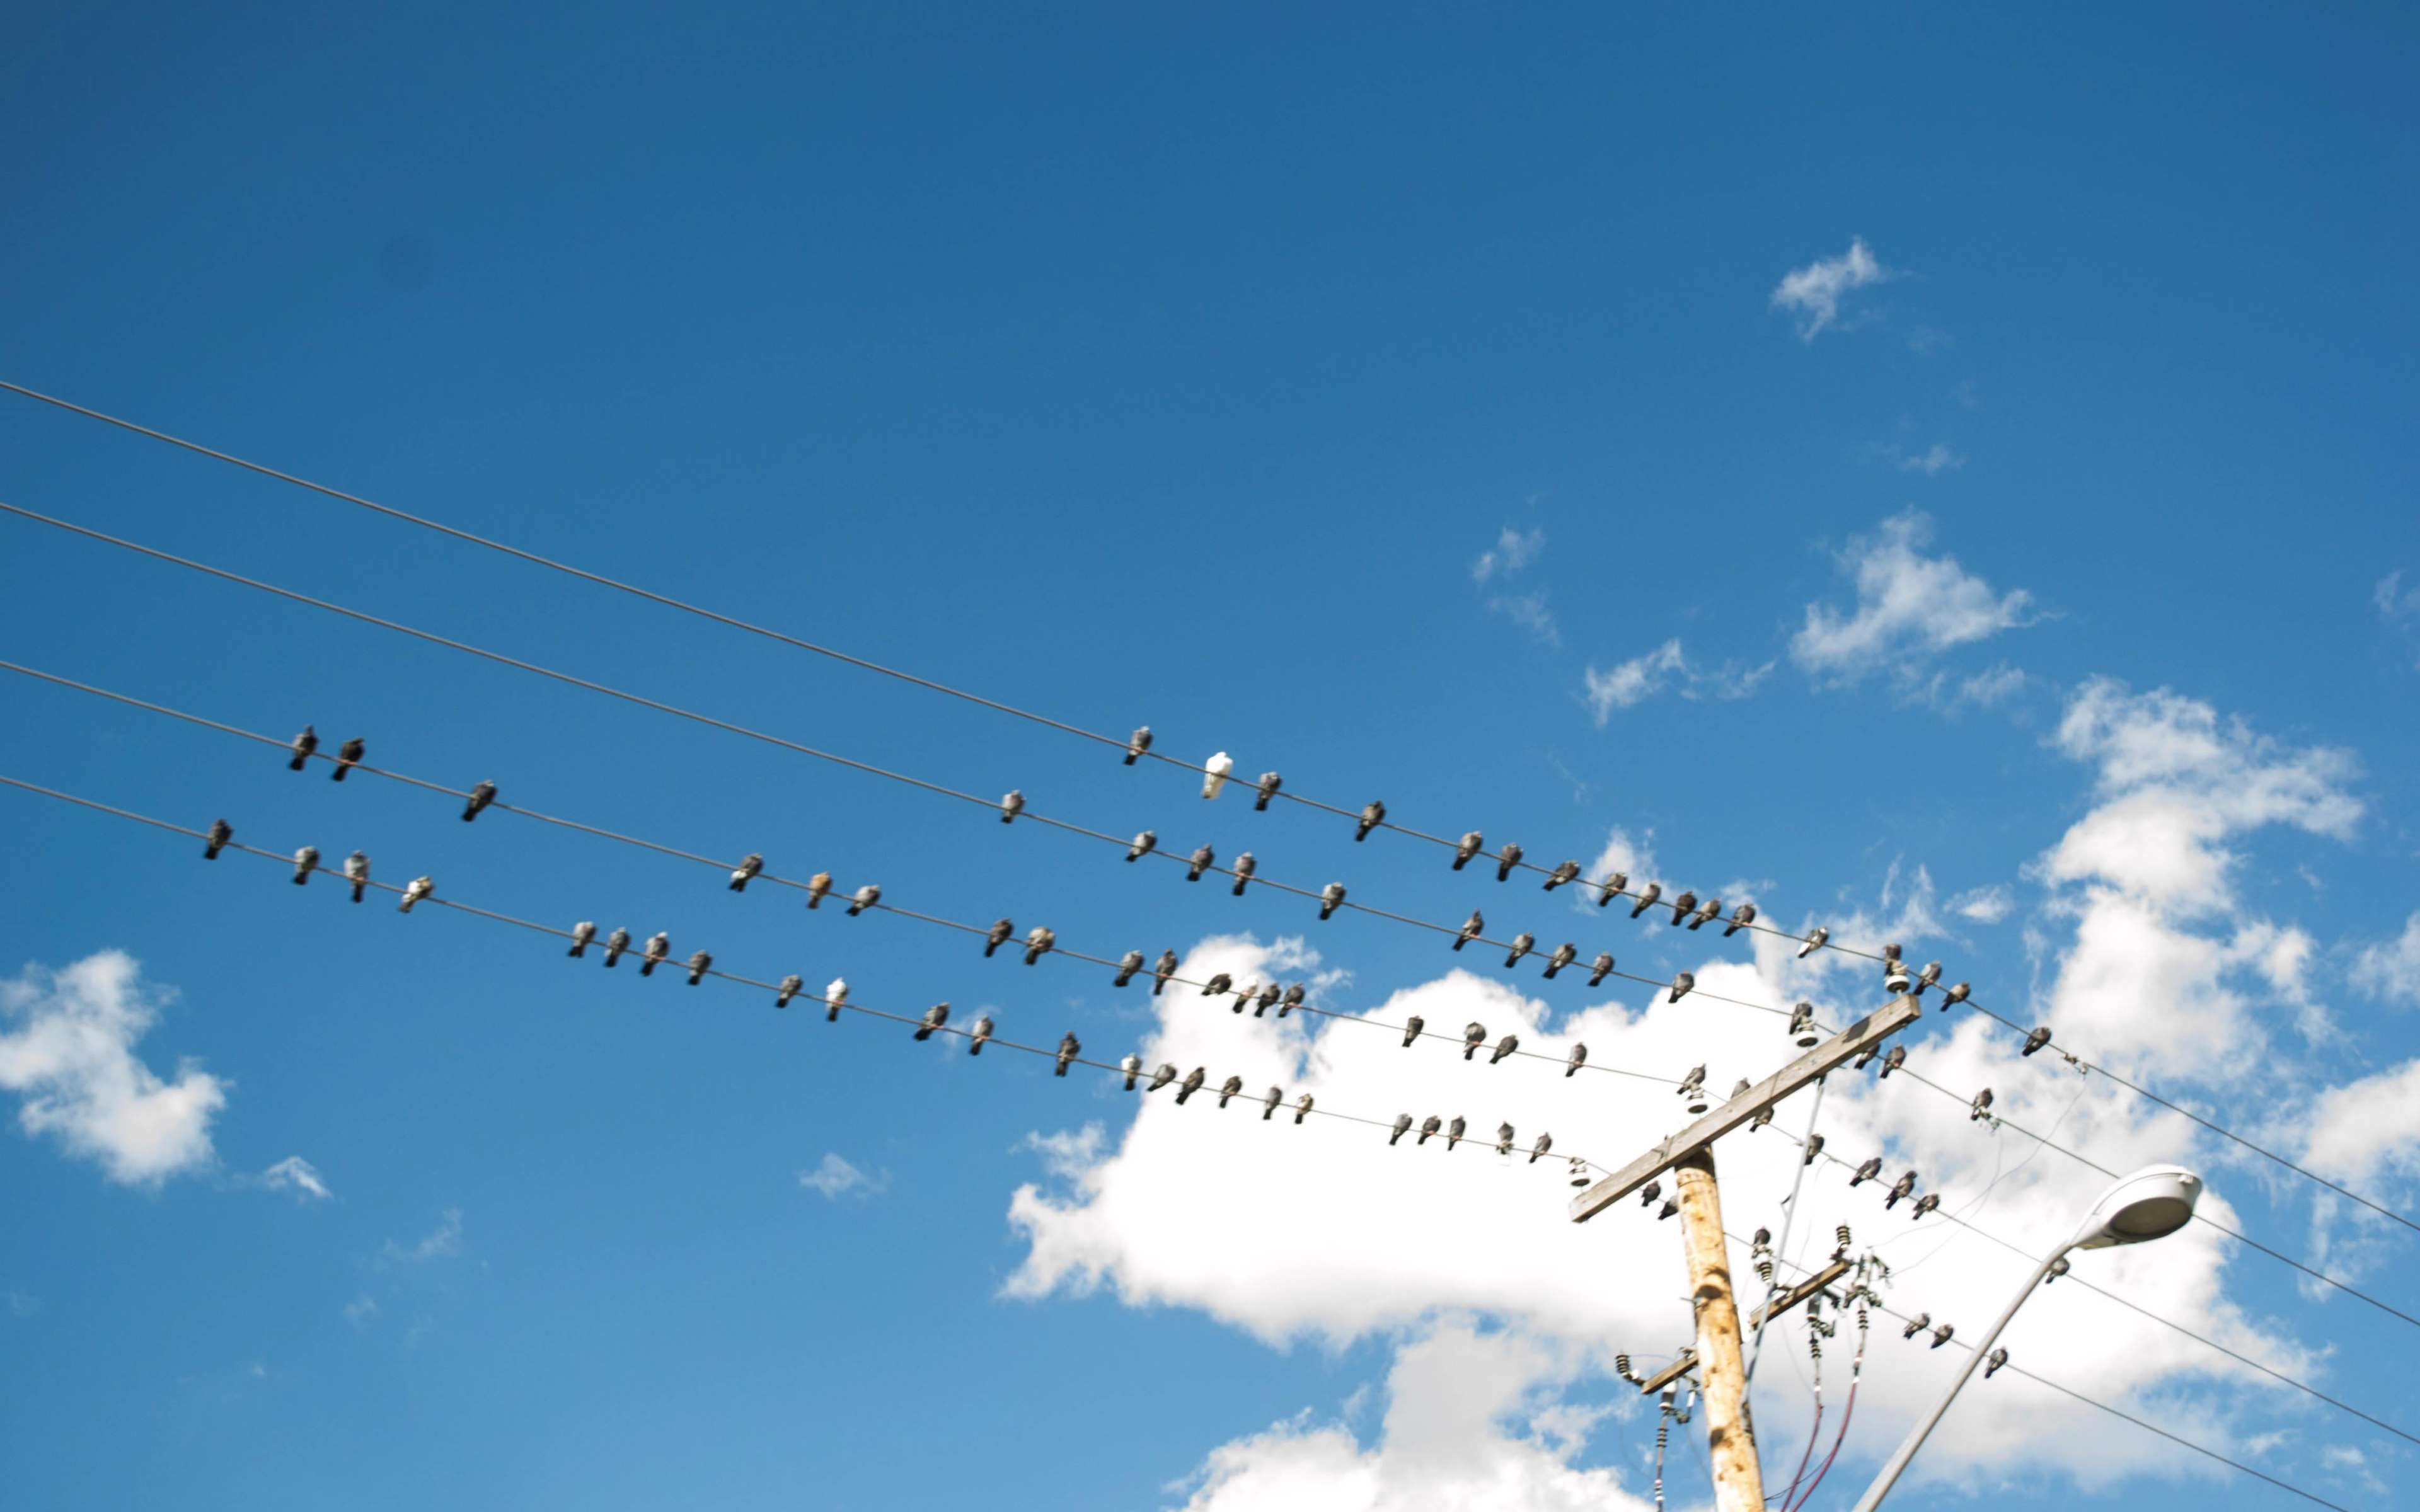 Abstract Bird Birds On A Wire Blue Blue Sky Clear Electrical